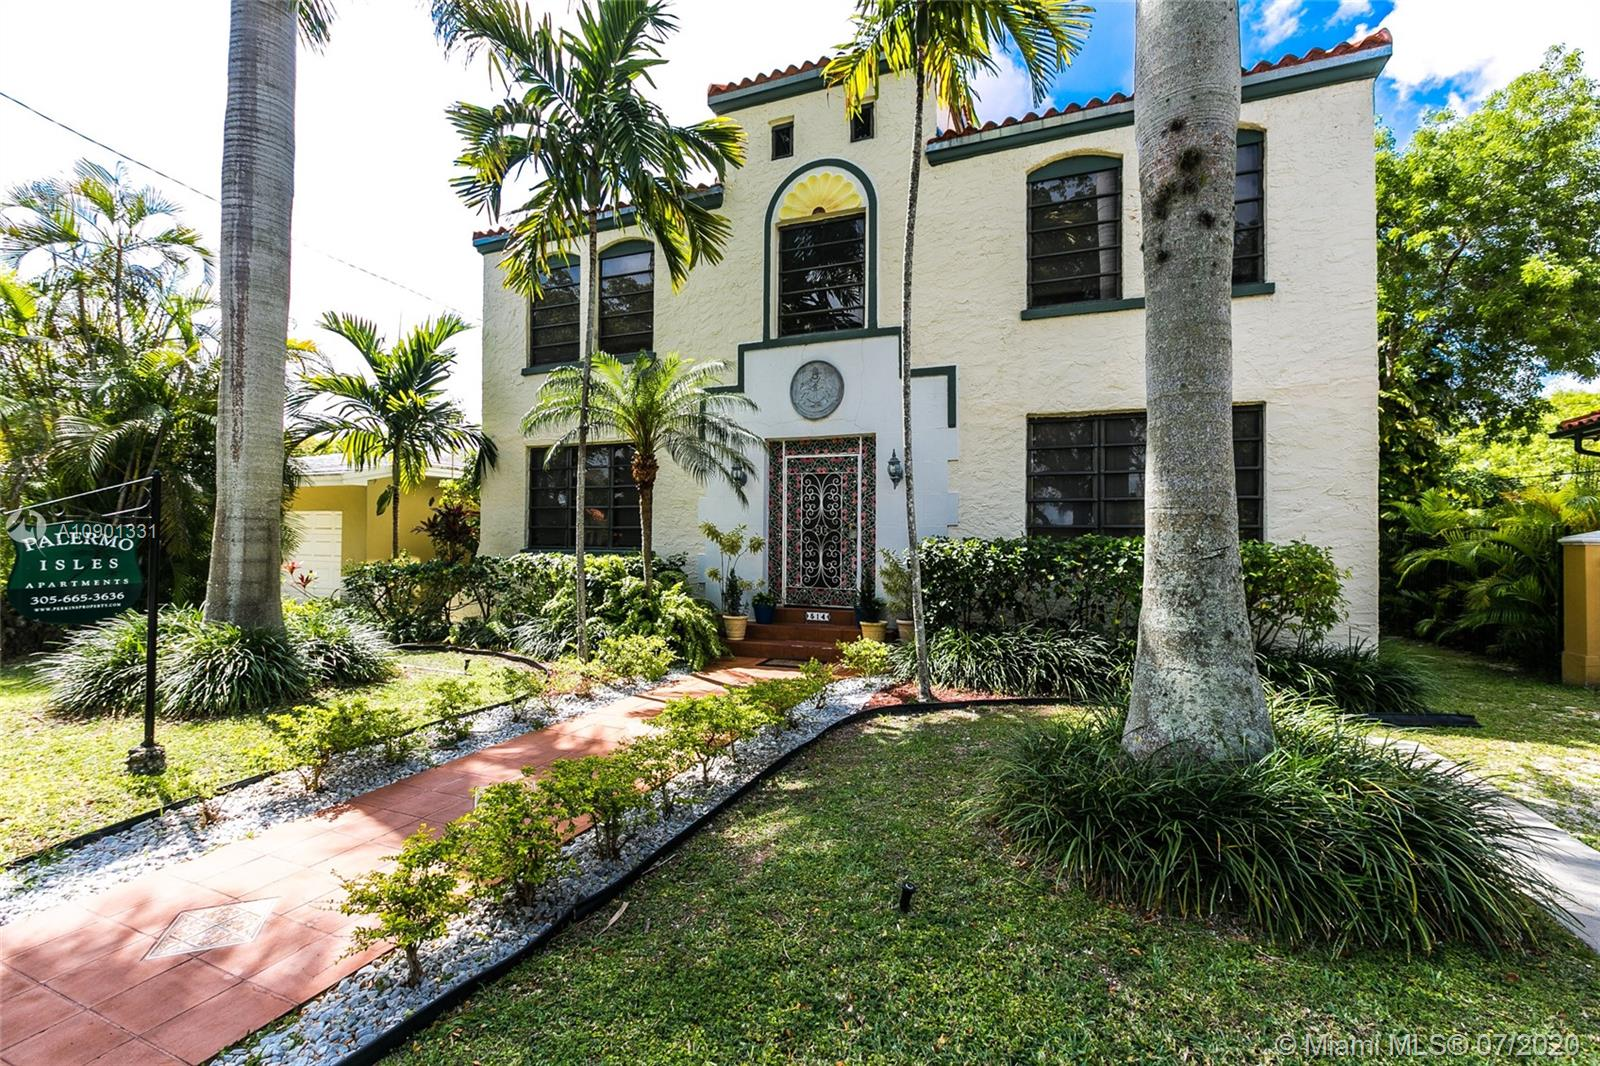 Details for 514 Palermo Ave, Coral Gables, FL 33134